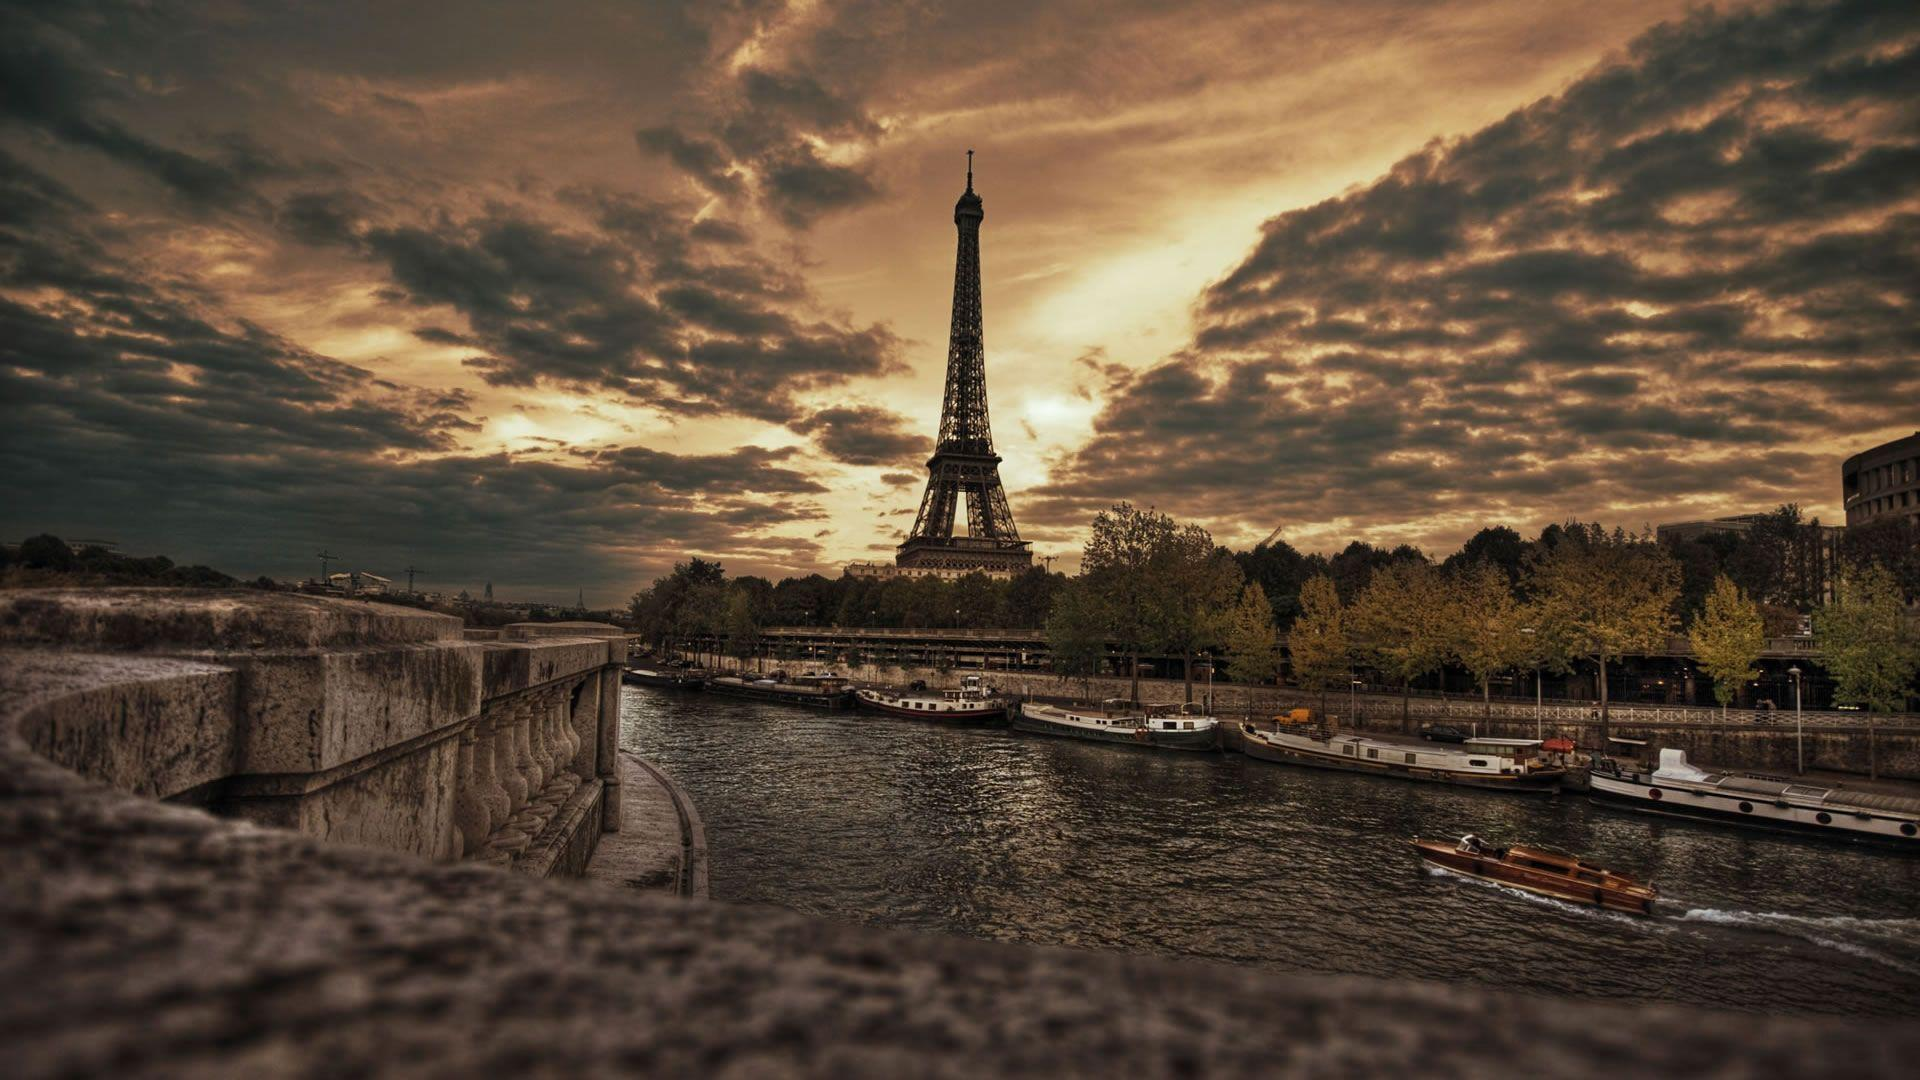 wallpaper paris, paris city wallpapers